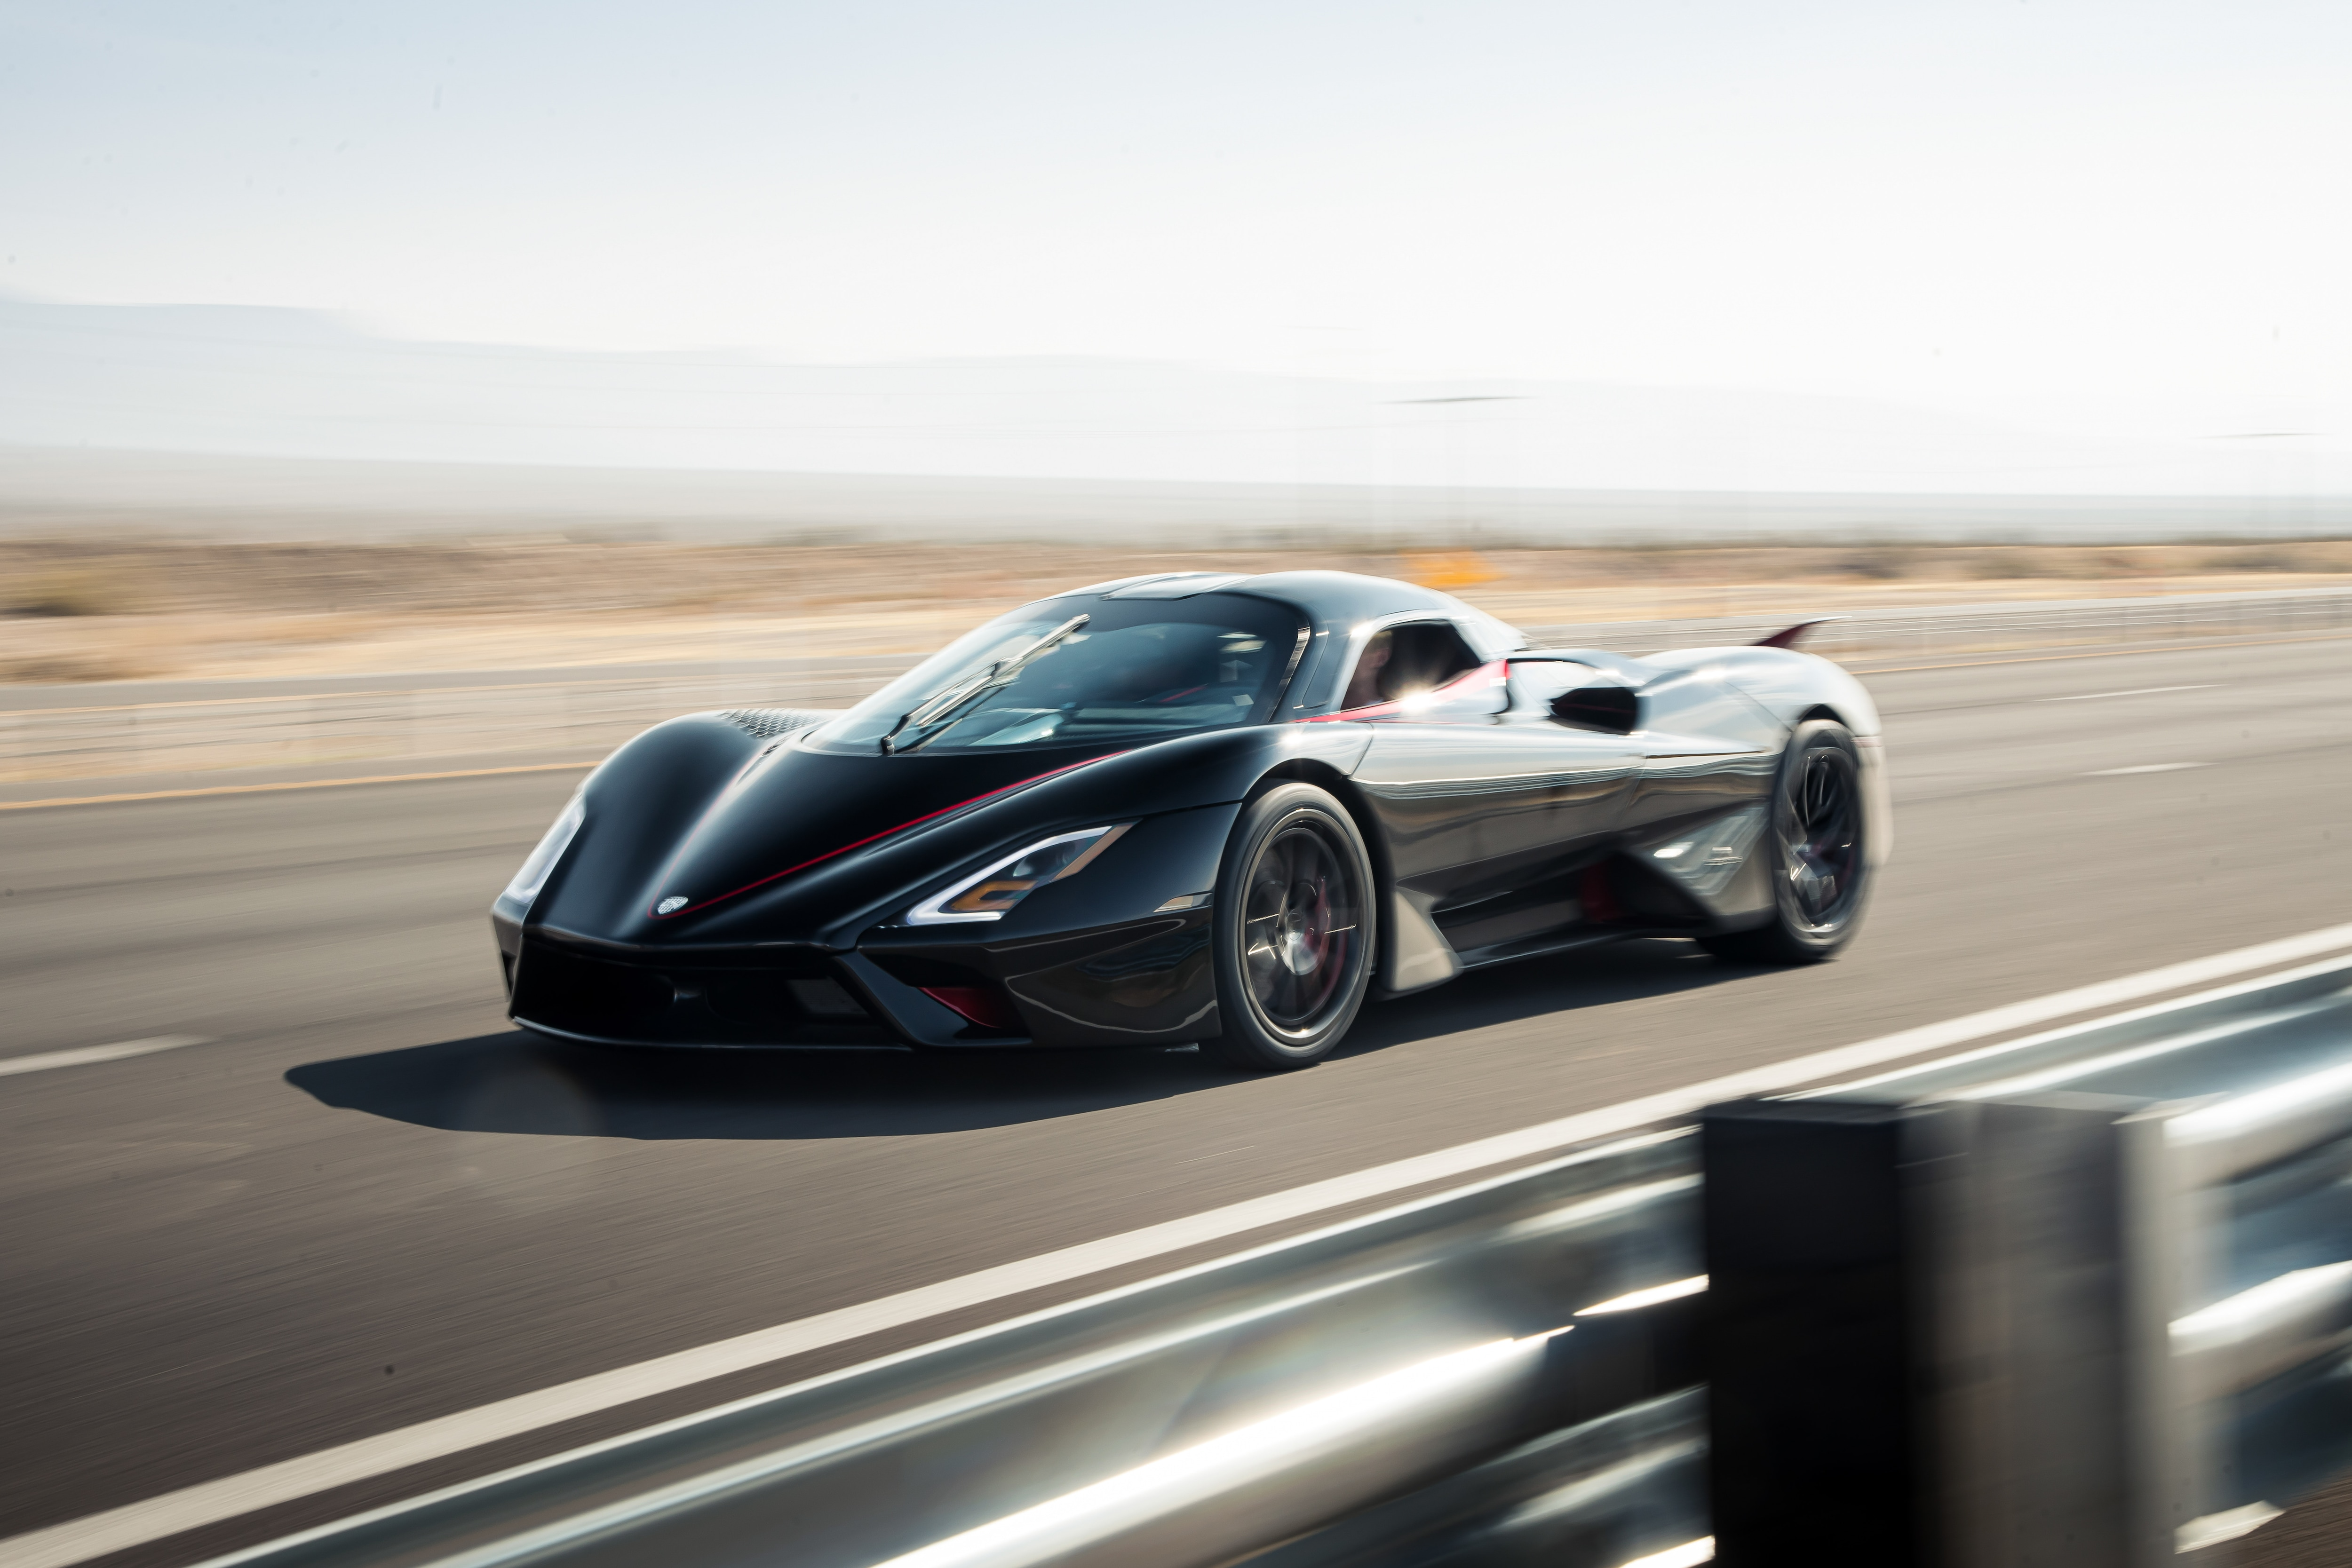 SSC Tuatara race against the clock on a public road just outside of Las Vegas.